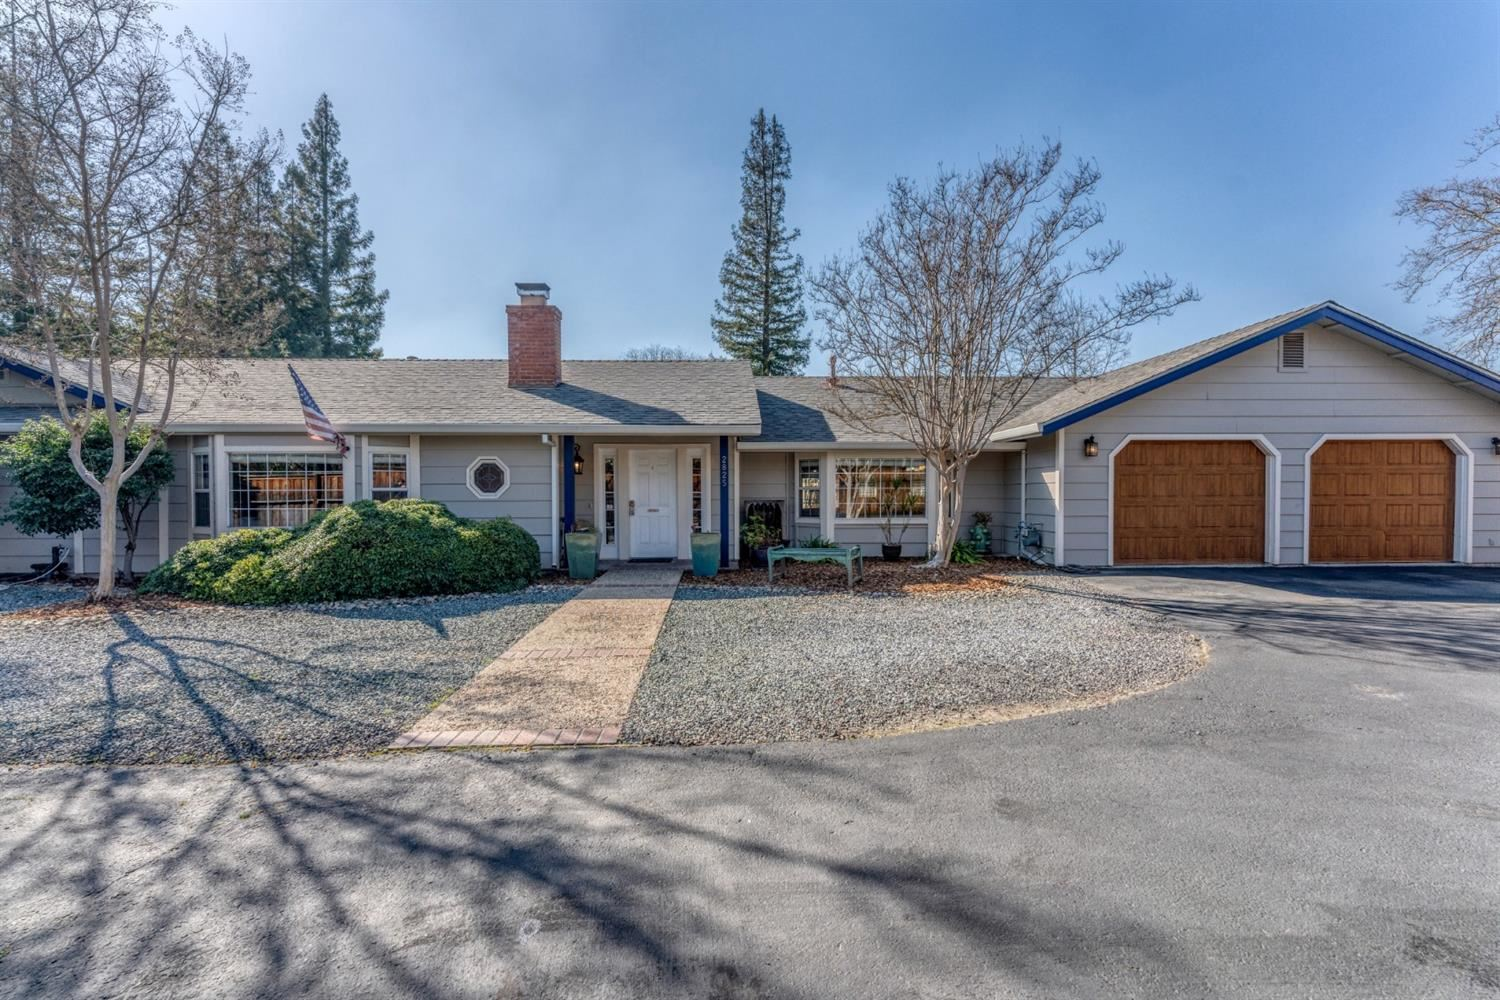 Photo of 2825 Mission Ave., Carmichael, CA 95608 (MLS # 221008536)